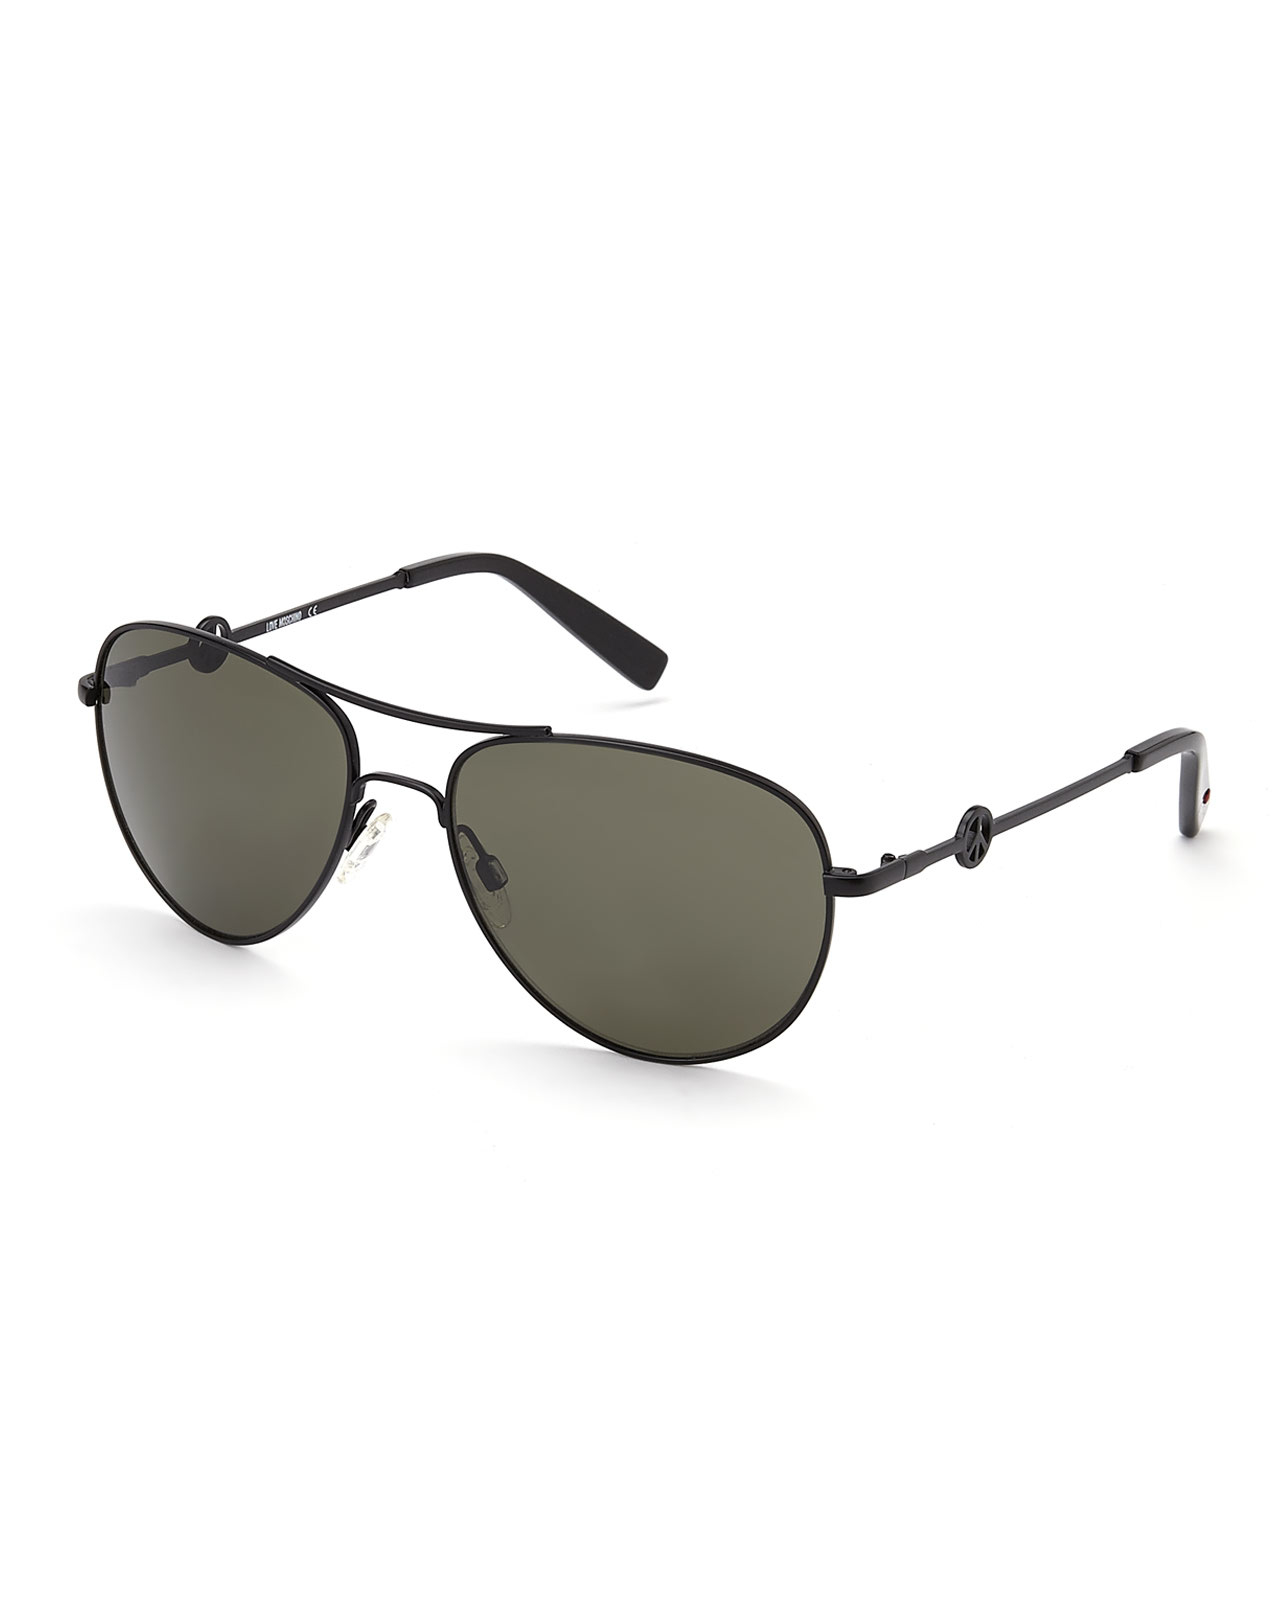 Lyst Love Moschino Ml51501 Black Aviator Sunglasses In Black